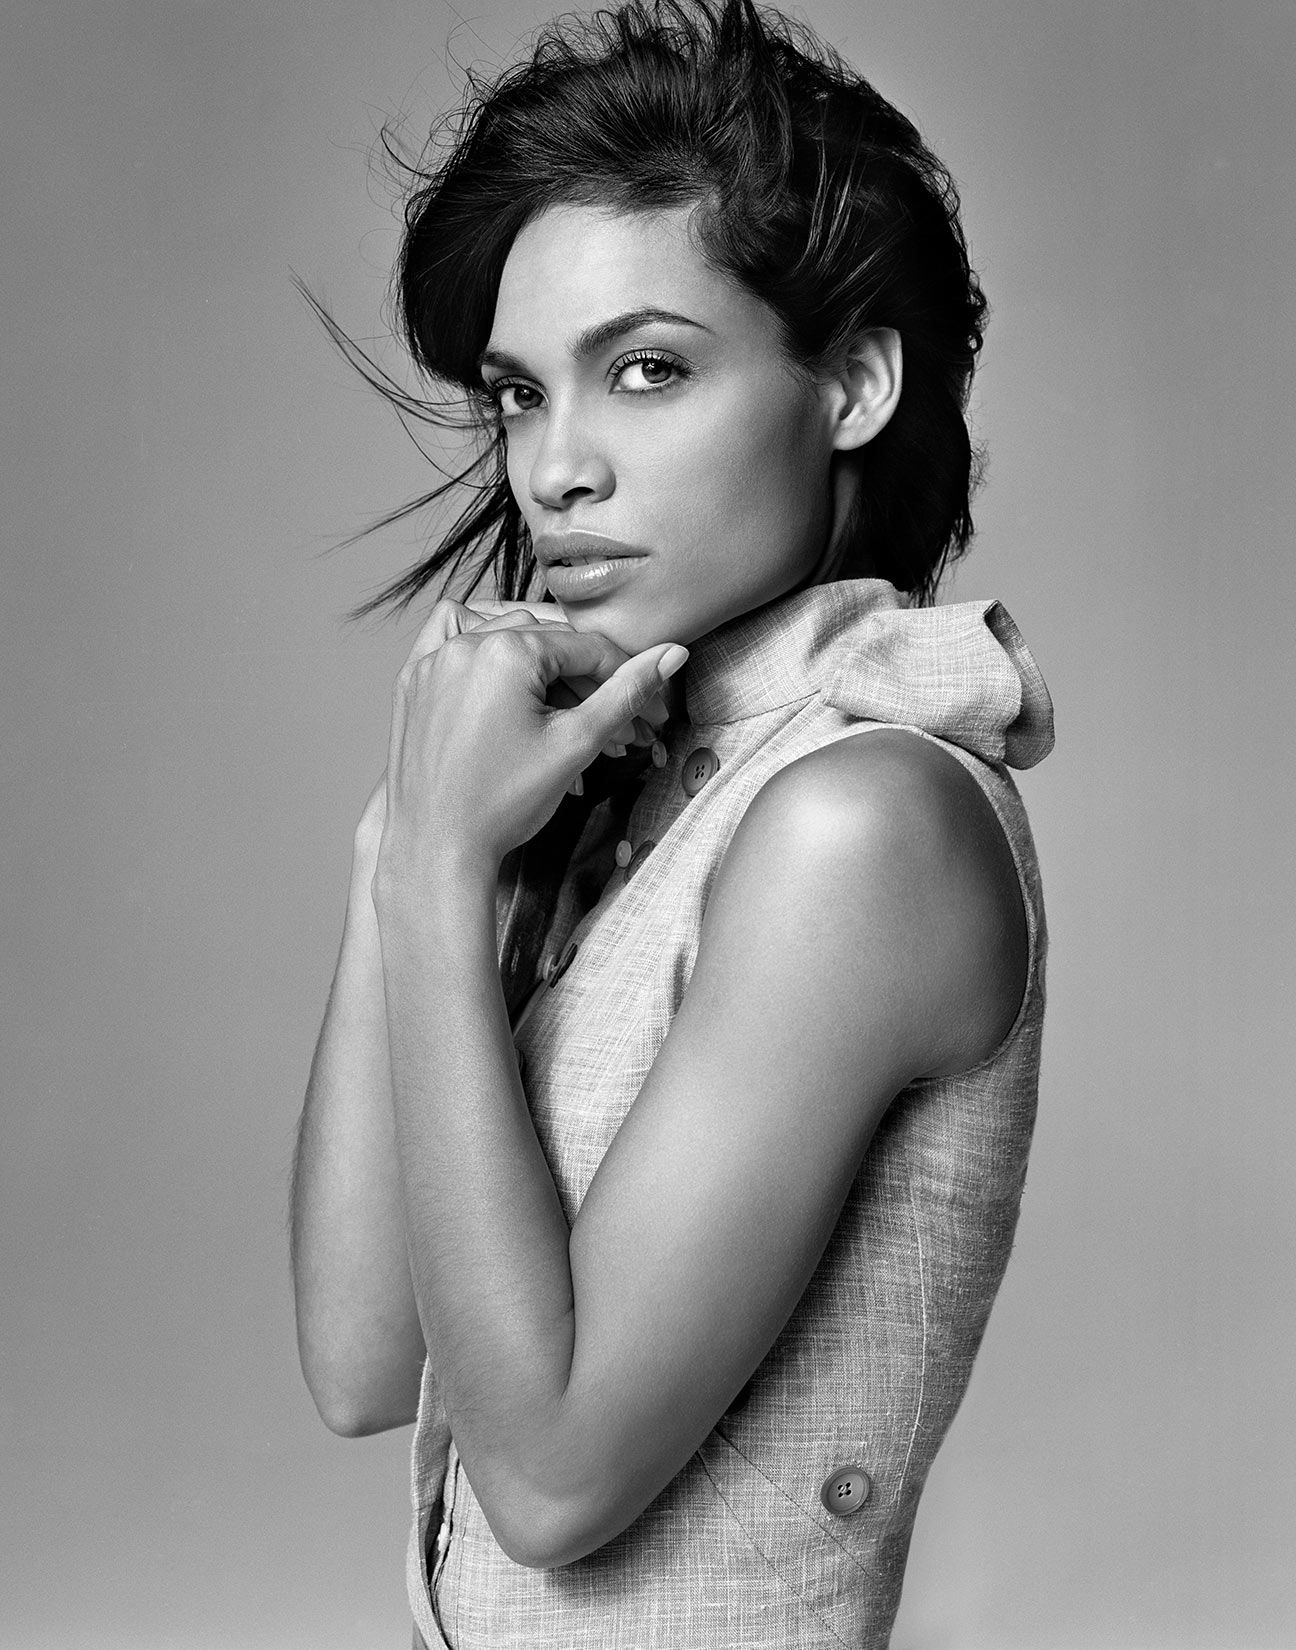 Rosario-Dawson-by-Robert-Ascroft.jpg